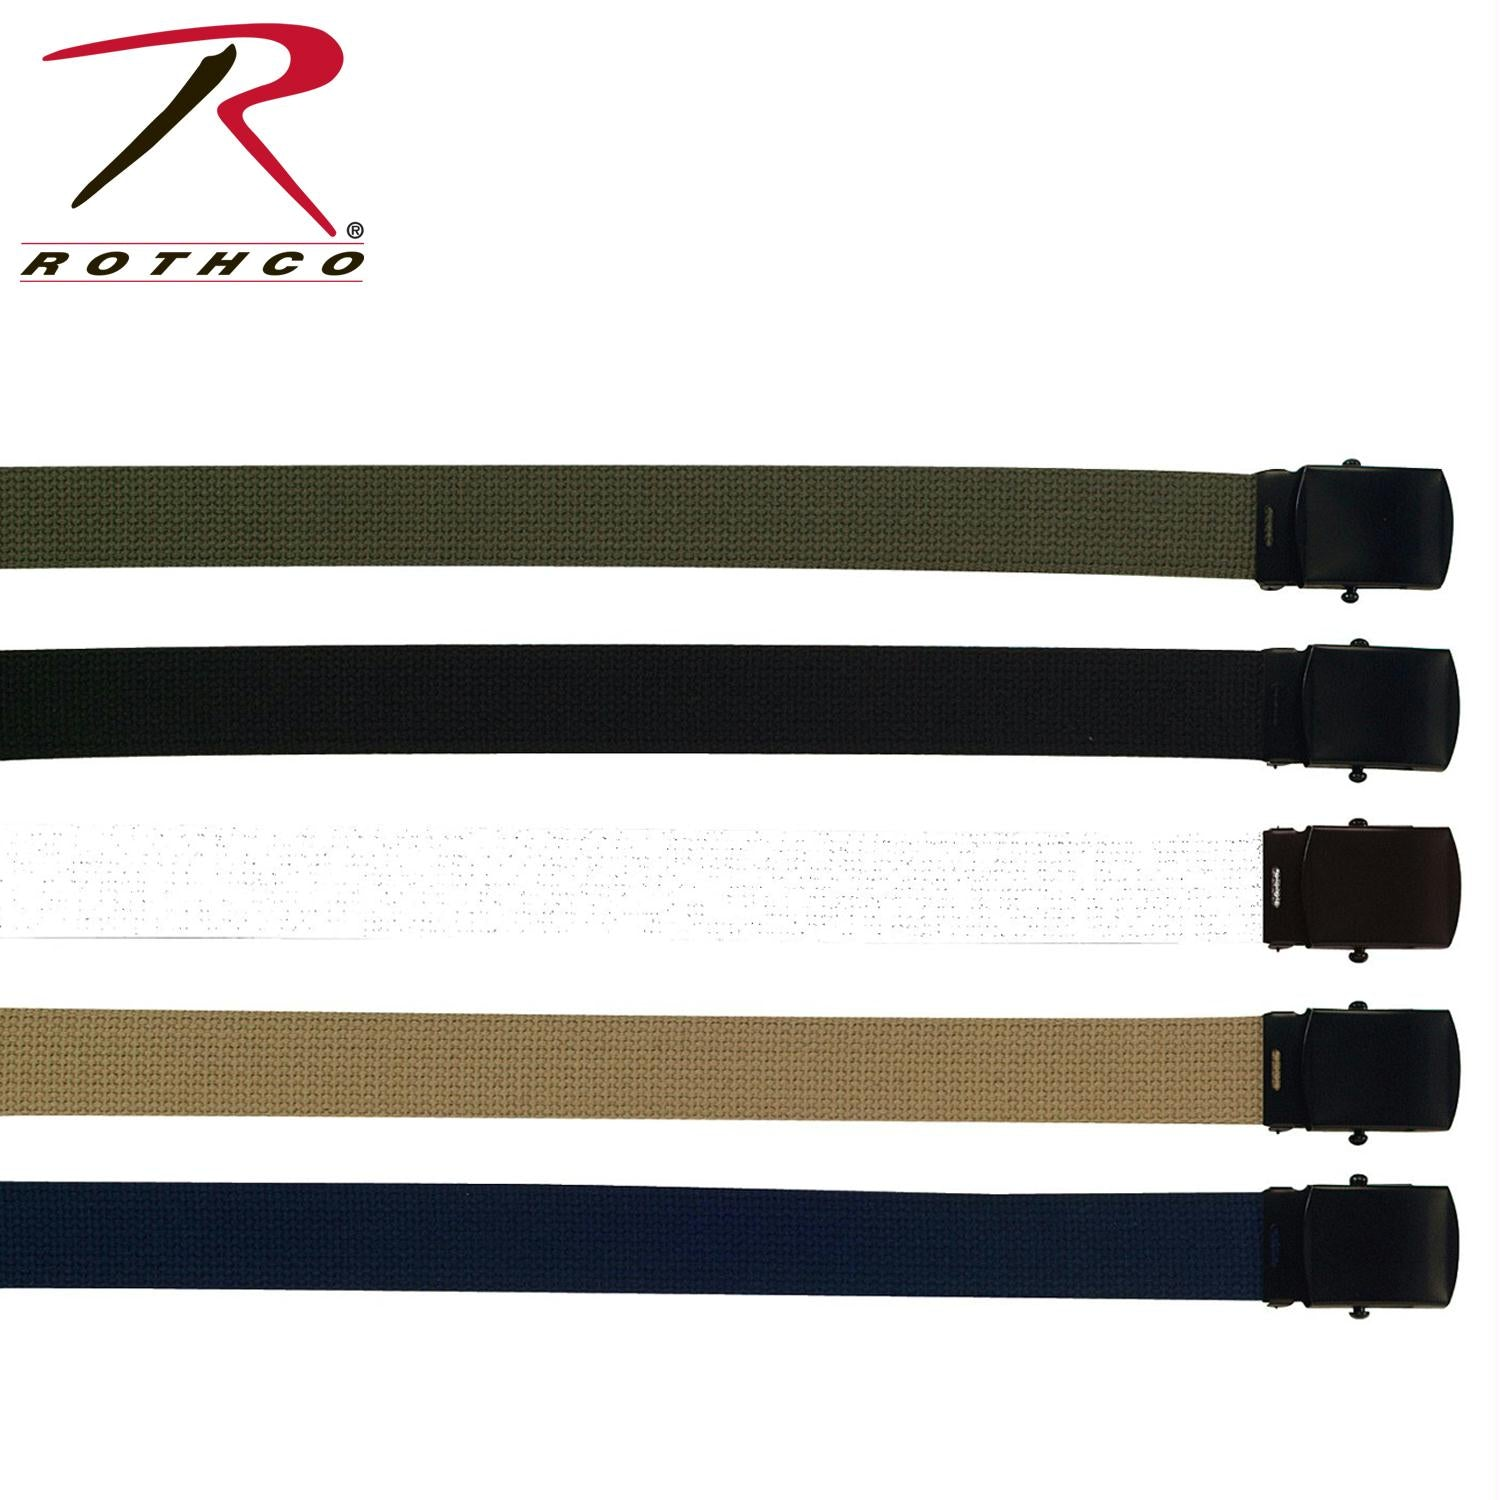 Rothco Military Web Belts w/ Black Buckle - Olive Drab / 54 Inches